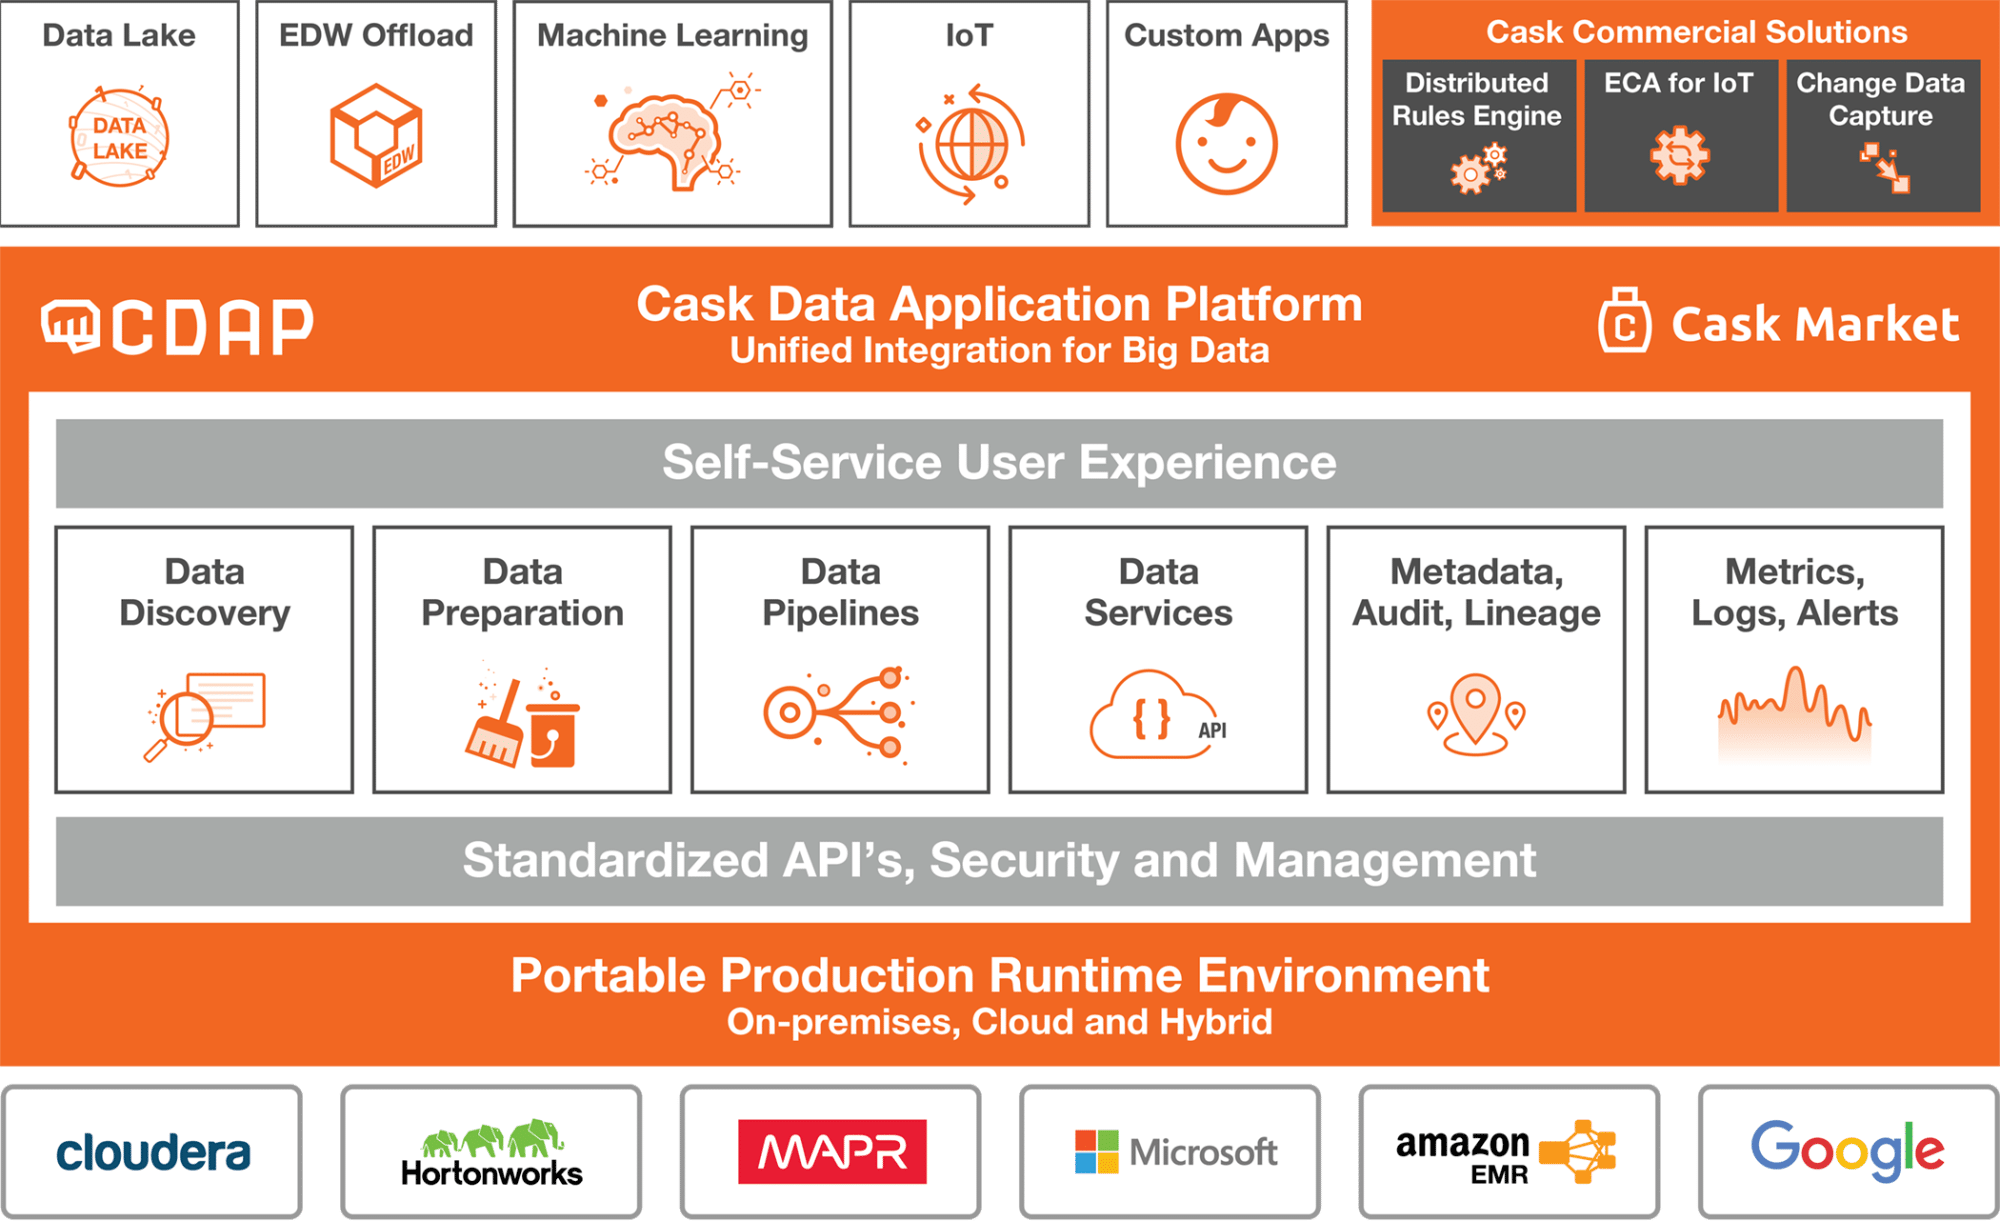 Die Cask Data Application Platform.